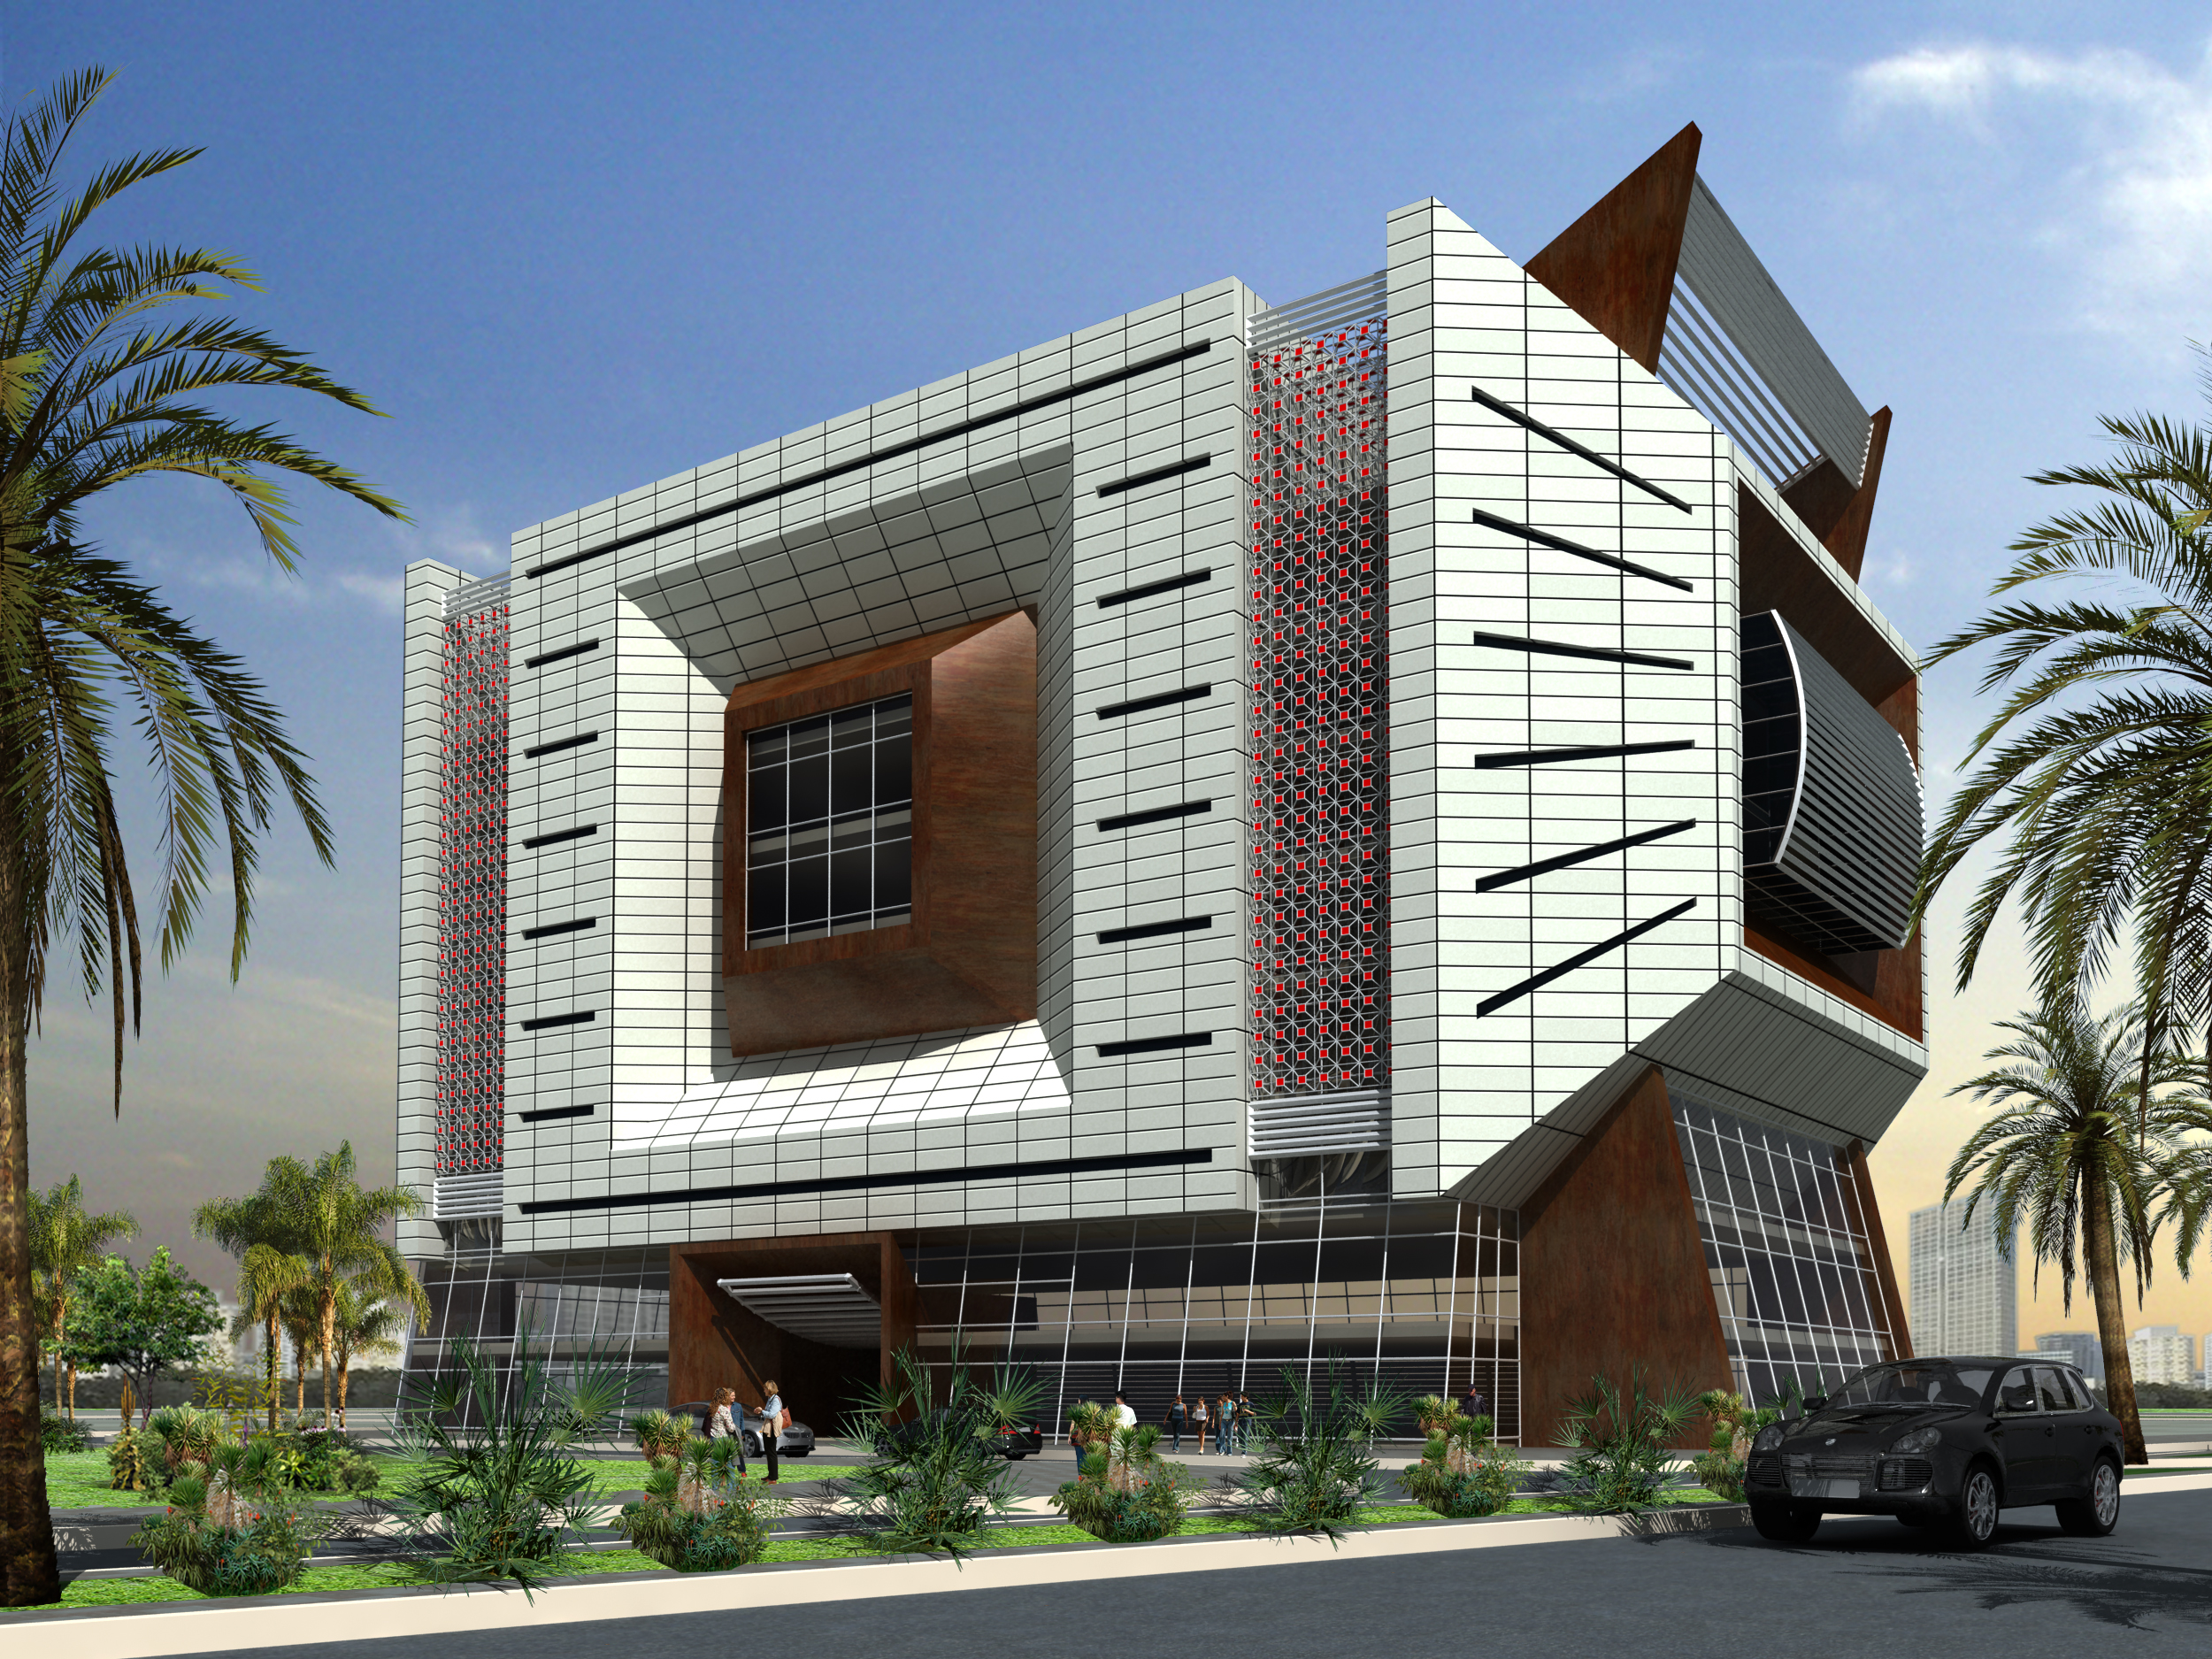 AL SAAD COMMERCIAL BUILDING